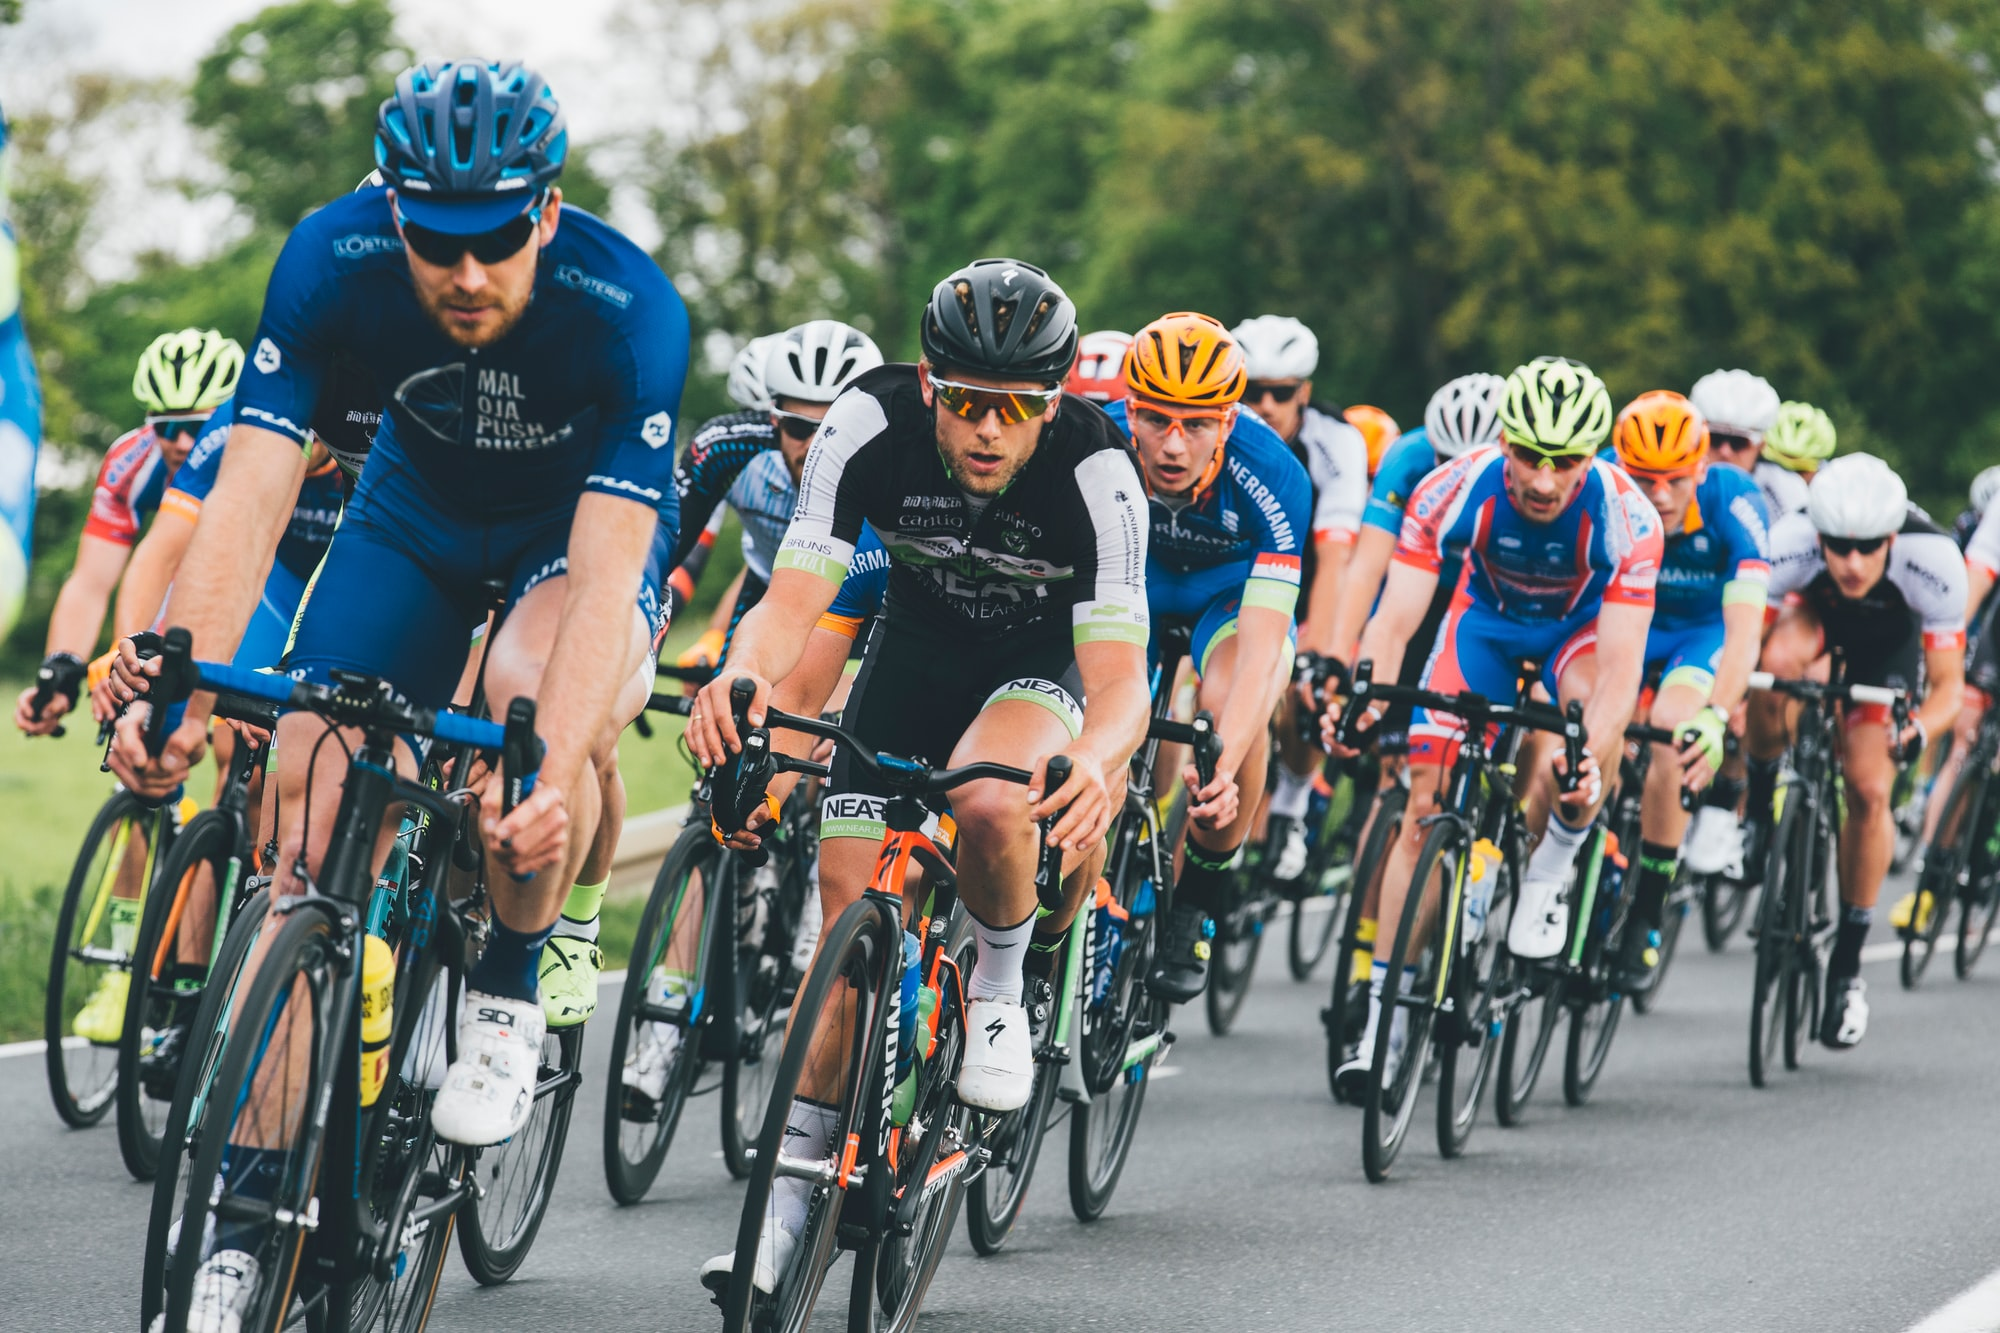 Bavarian Road Cycling Championship 2017 in Baiersdorf (Middle Franconia)